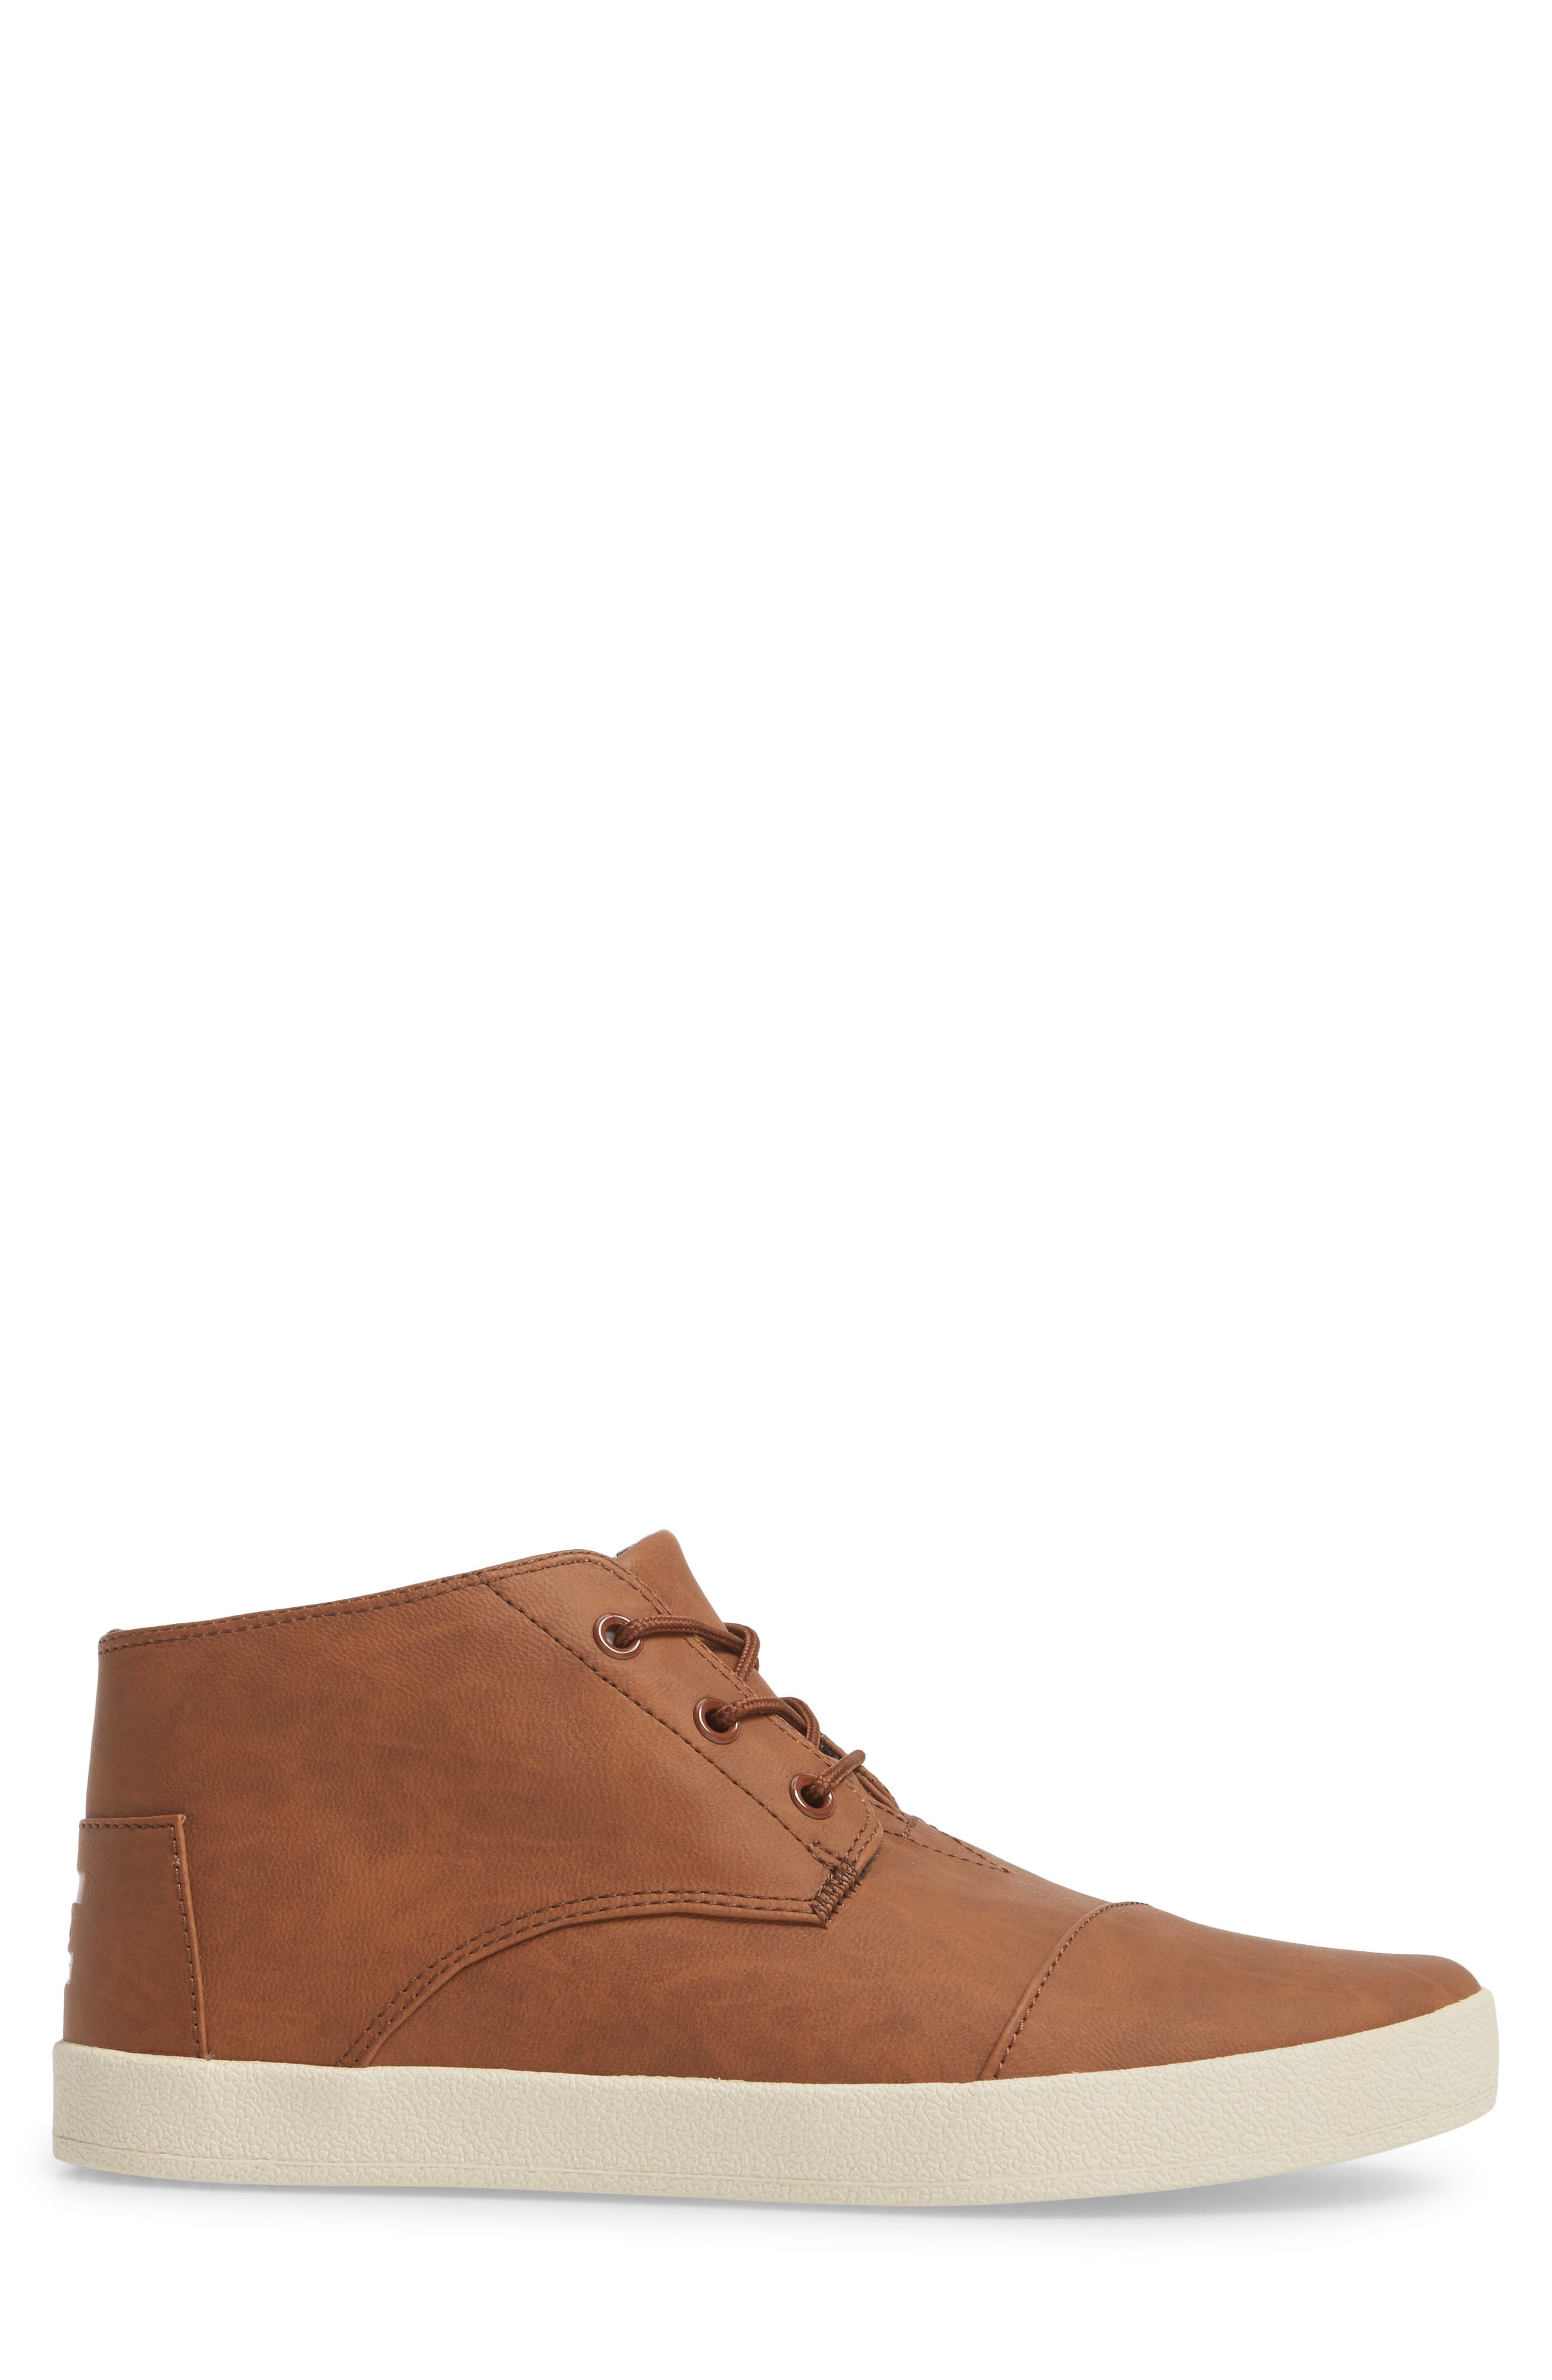 Paseo Mid Sneaker,                             Alternate thumbnail 3, color,                             Dark Earth Brown